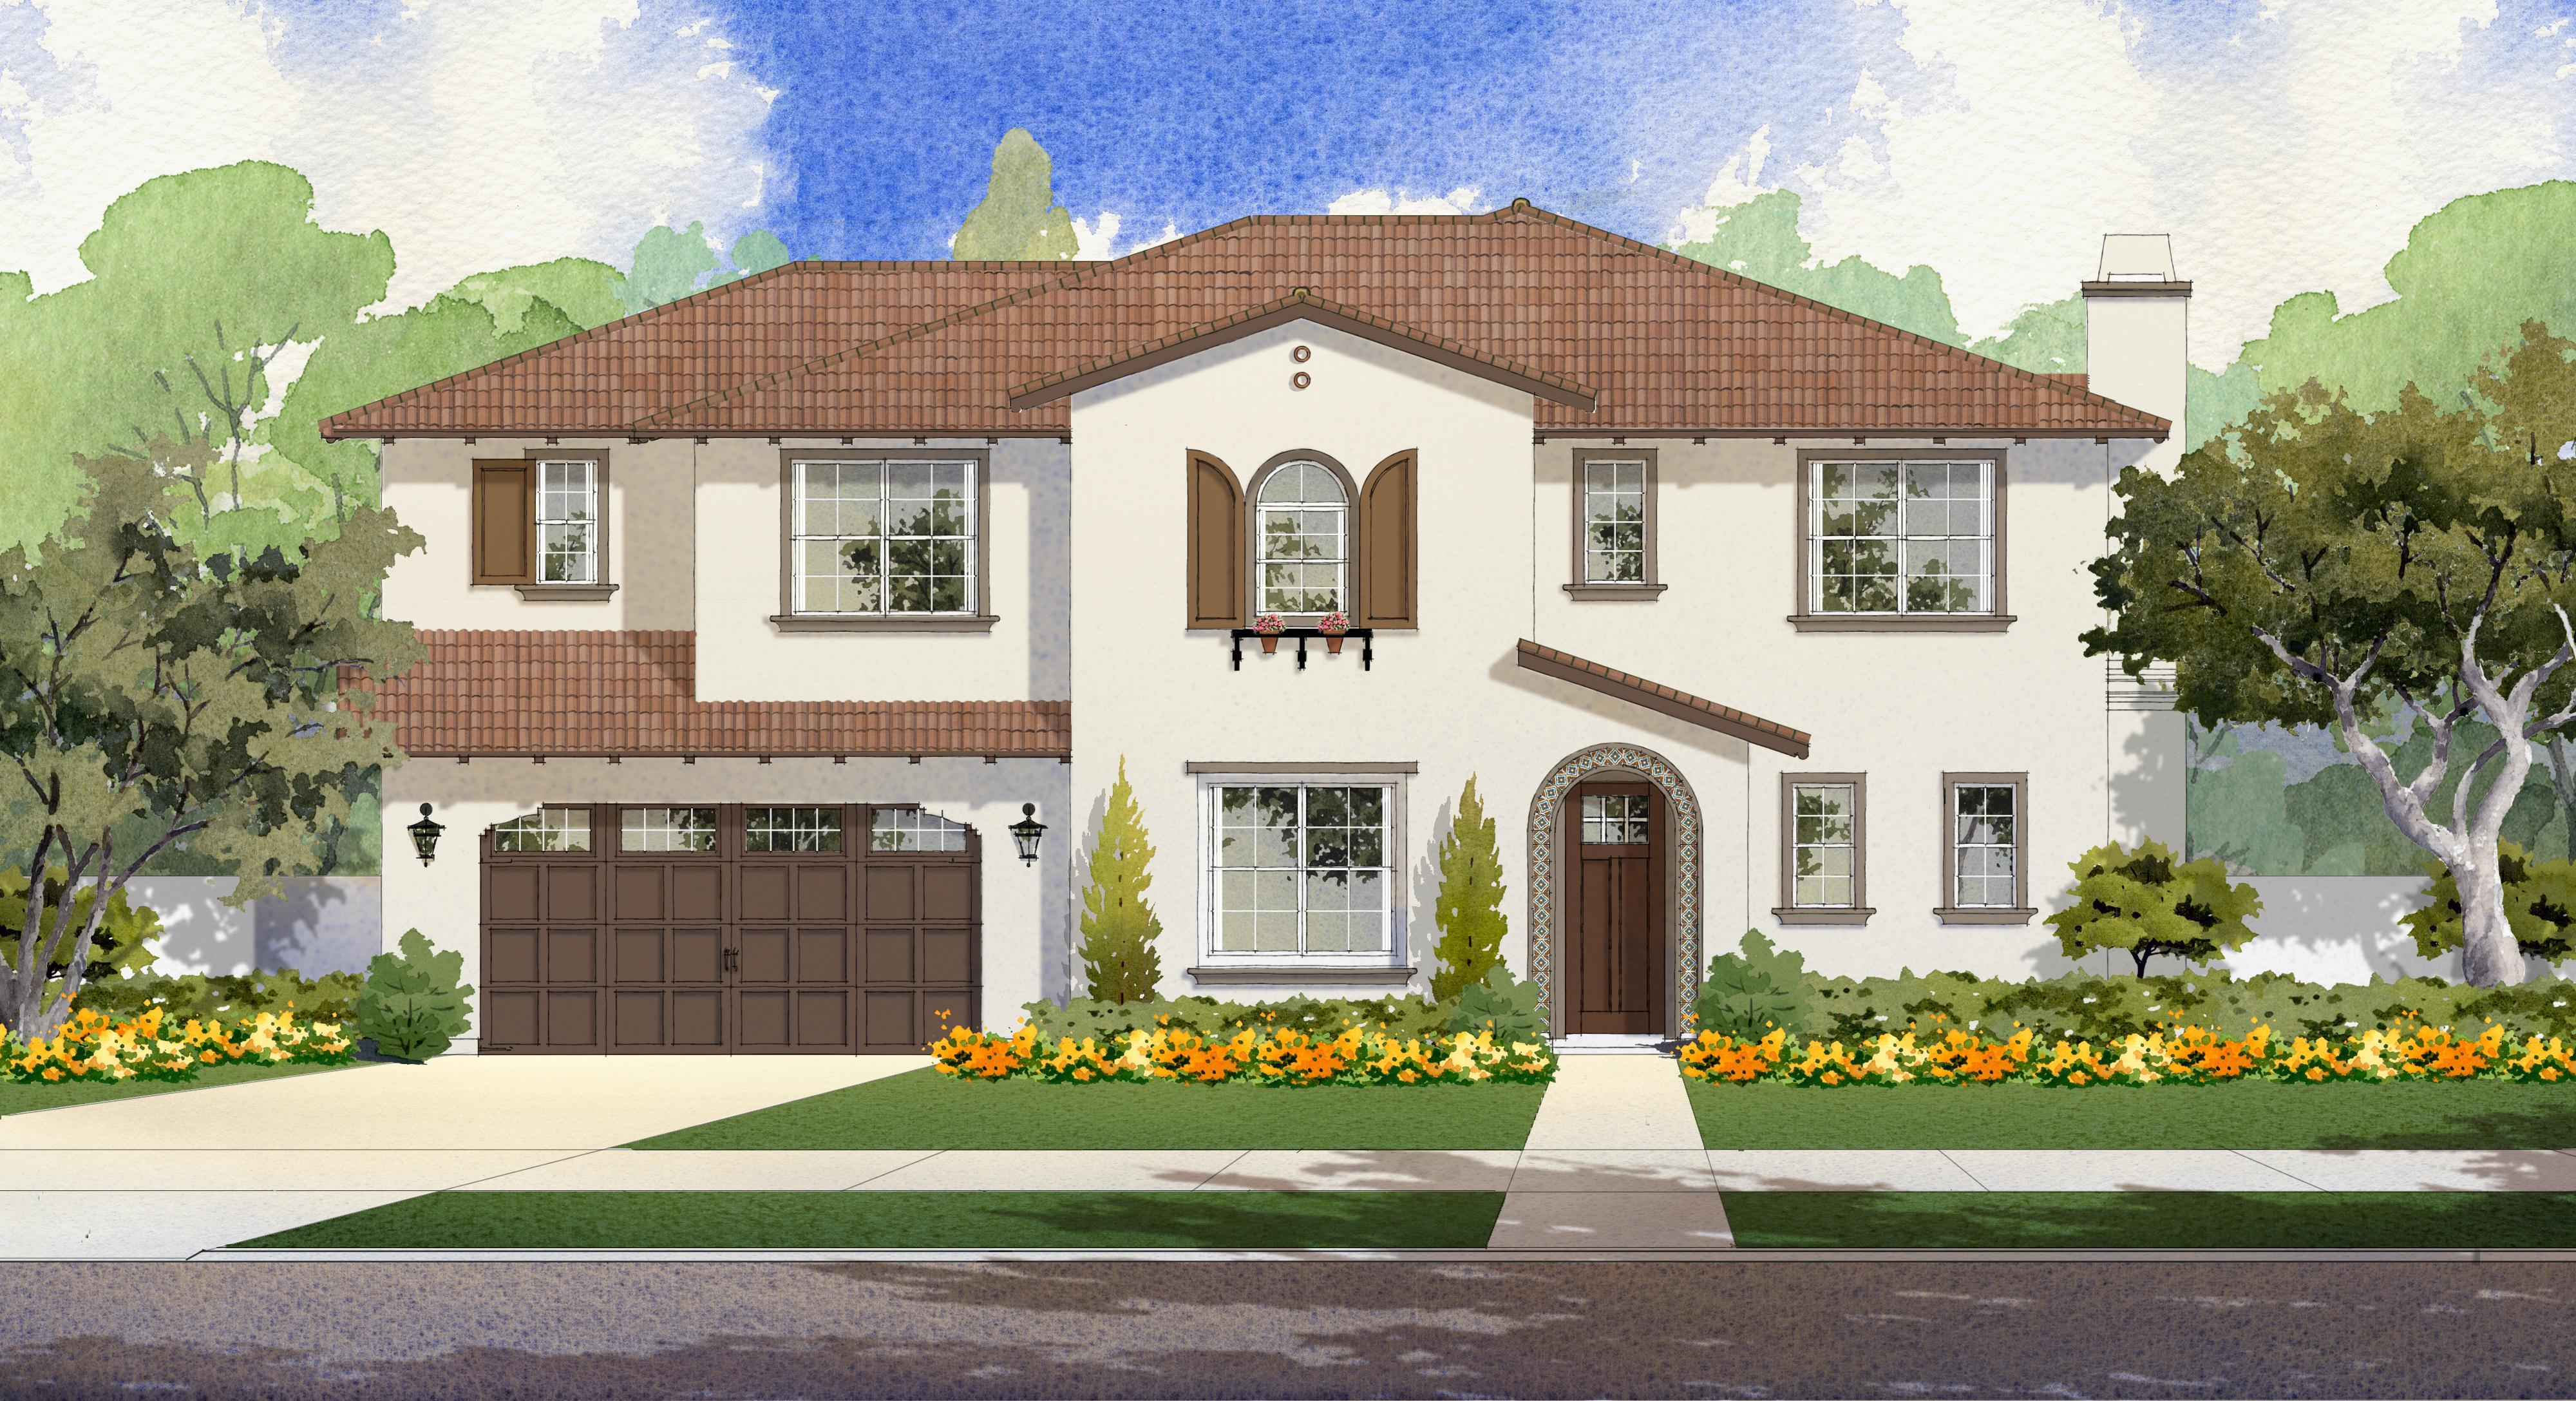 New Homes in West Covina, CA   277 Communities   NewHomeSource